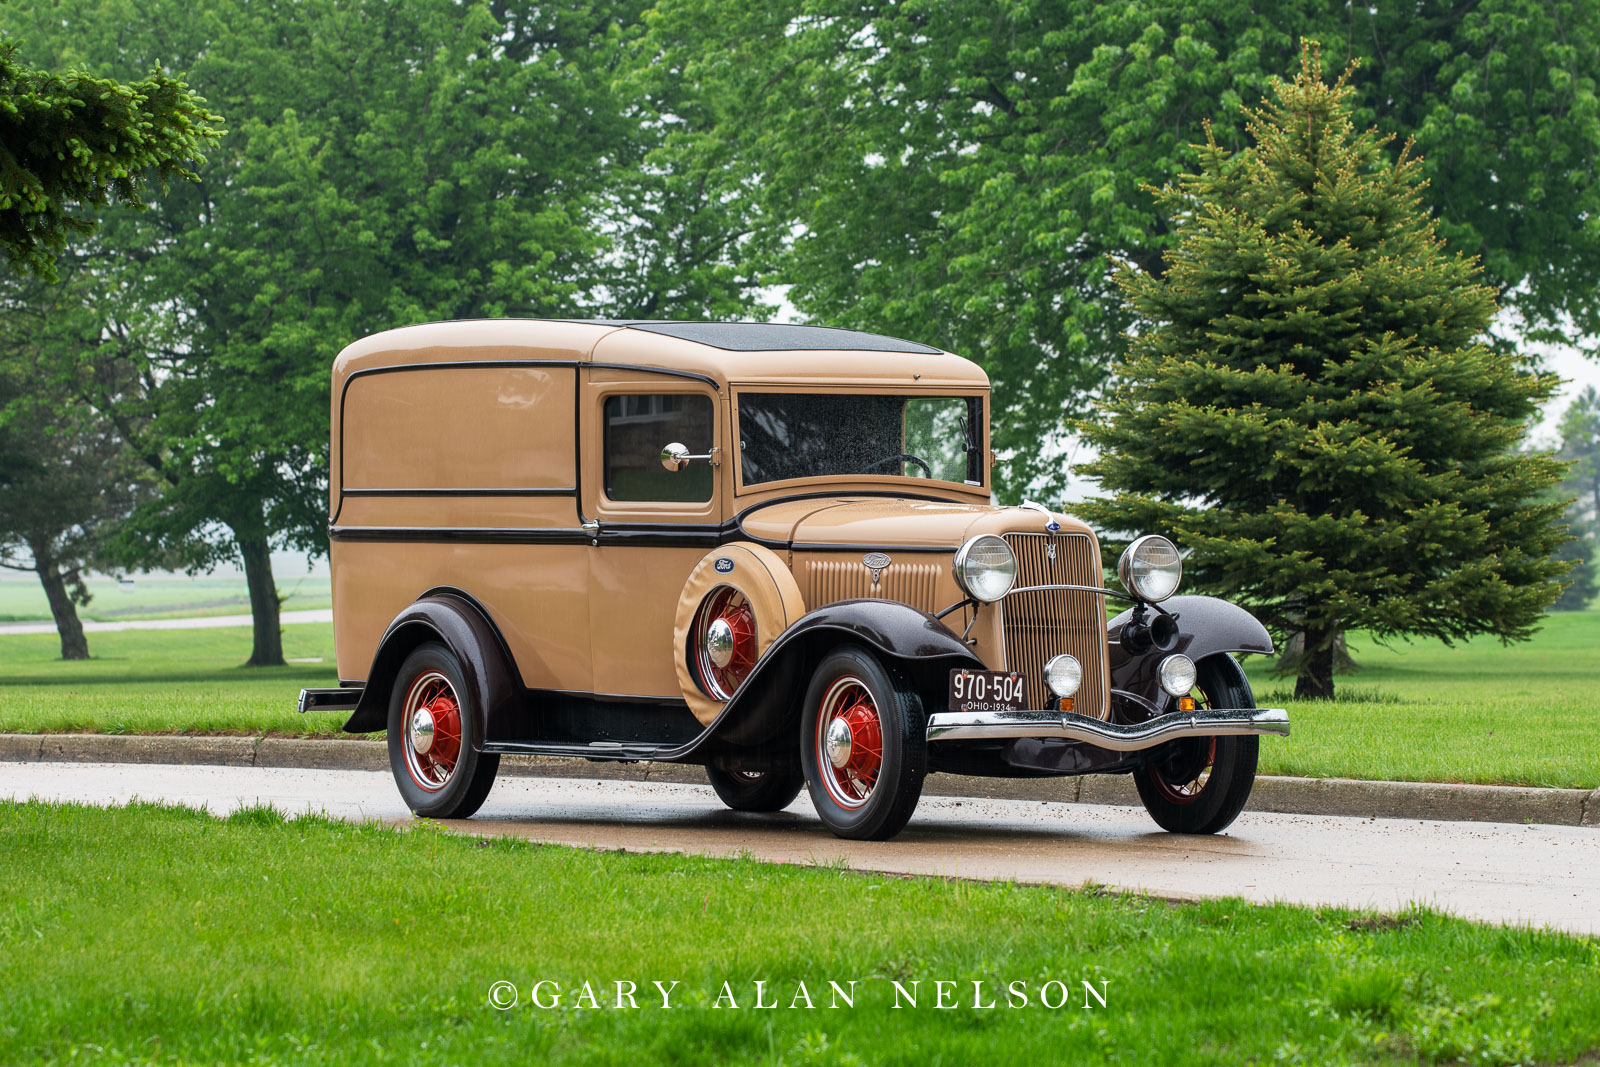 Ford, antique truck, vintage truck,1934 Ford Sedan Delivery, photo